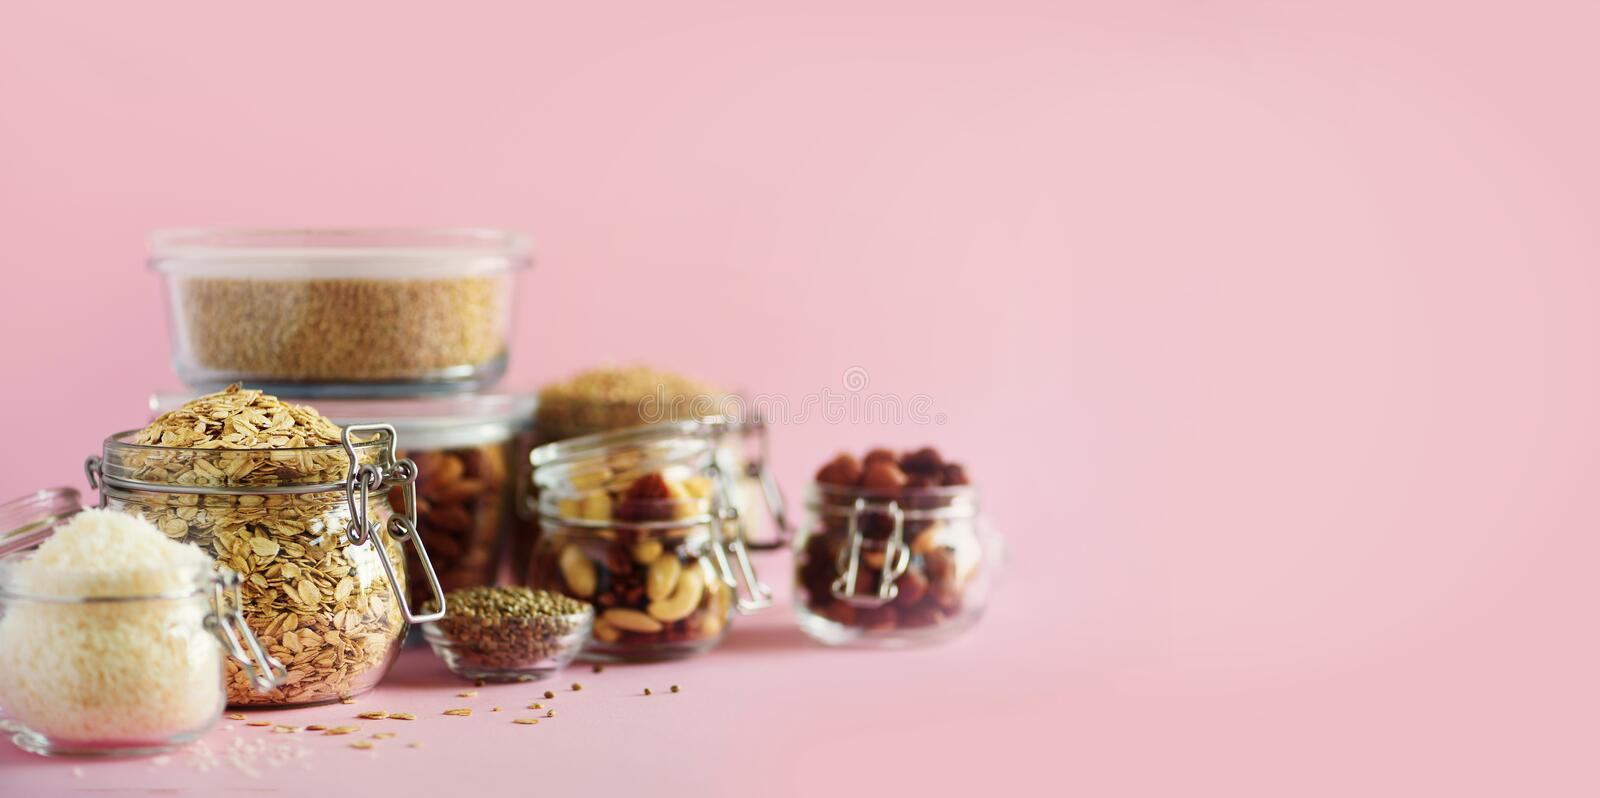 Grains, cereals, nut, dry fruits in glass jars over pink background with copy space. Clean eating, healthy, vegan diet concept.  stock photo